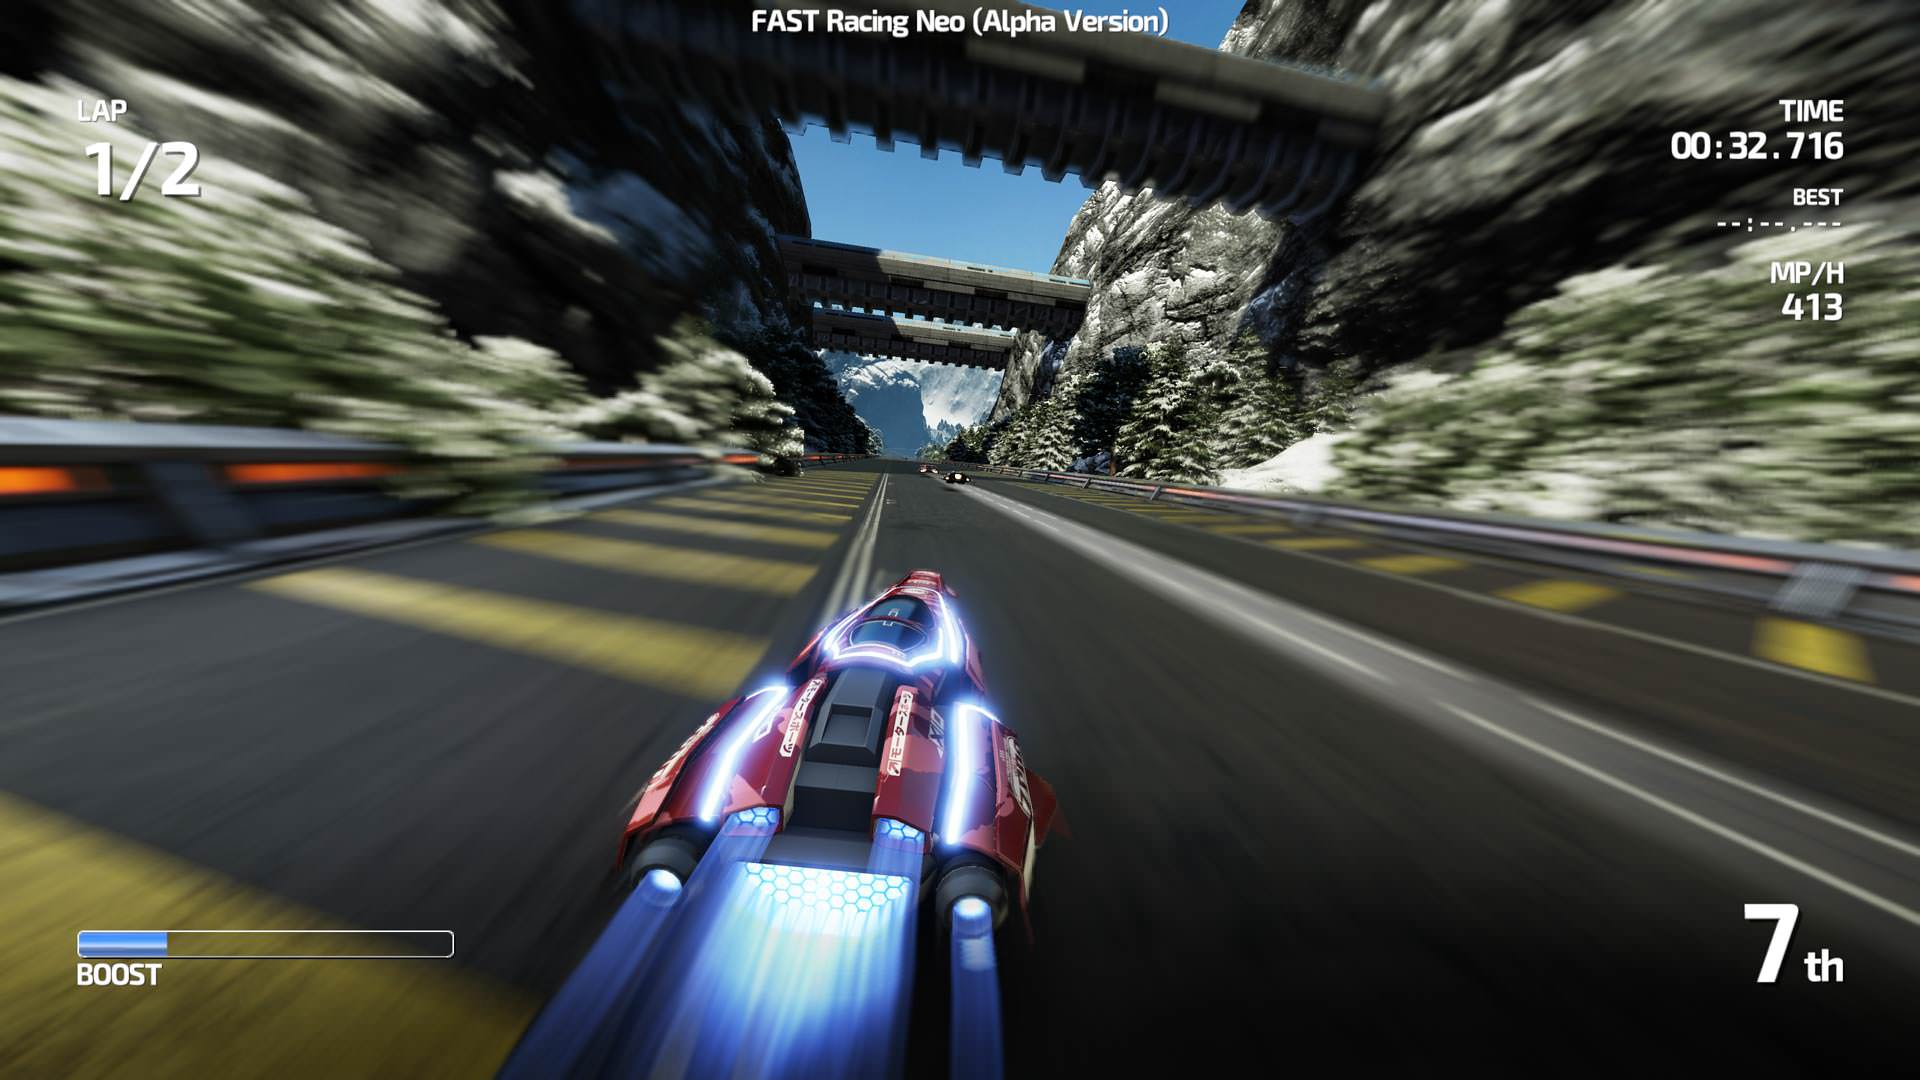 'FAST Racing Neo' nos muestra su multijugador local en un nuevo gameplay